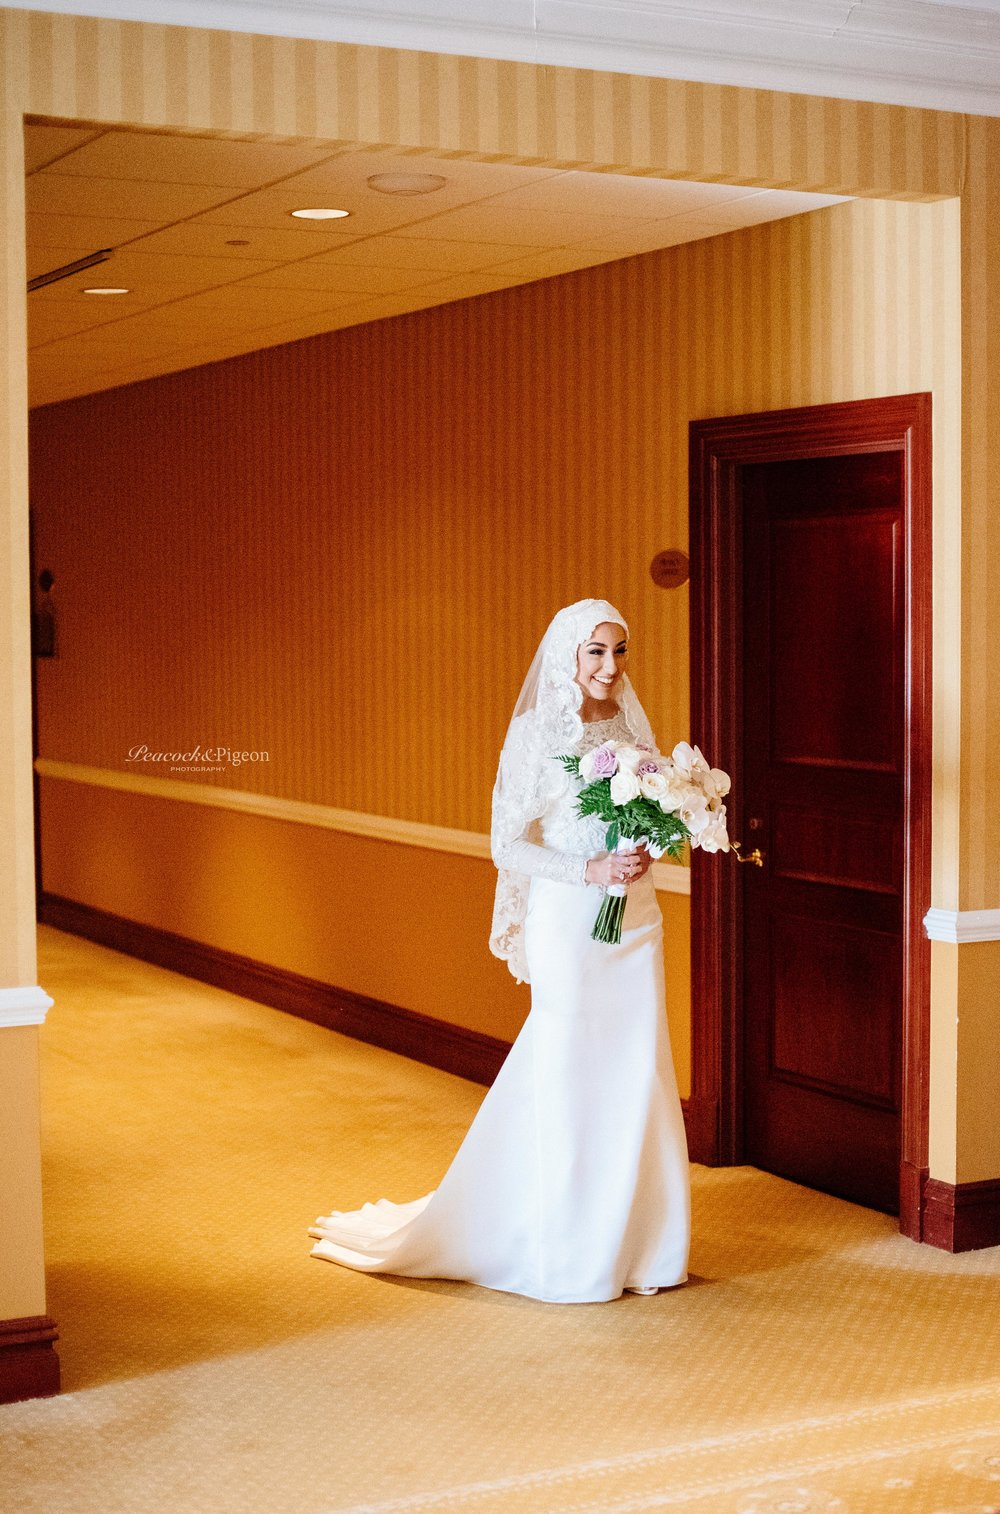 The_Wedding_of_Radwa_and_Kareem_at_Somerset_Palace_Part_Four_The_Reveal-Watermarked-8.jpg